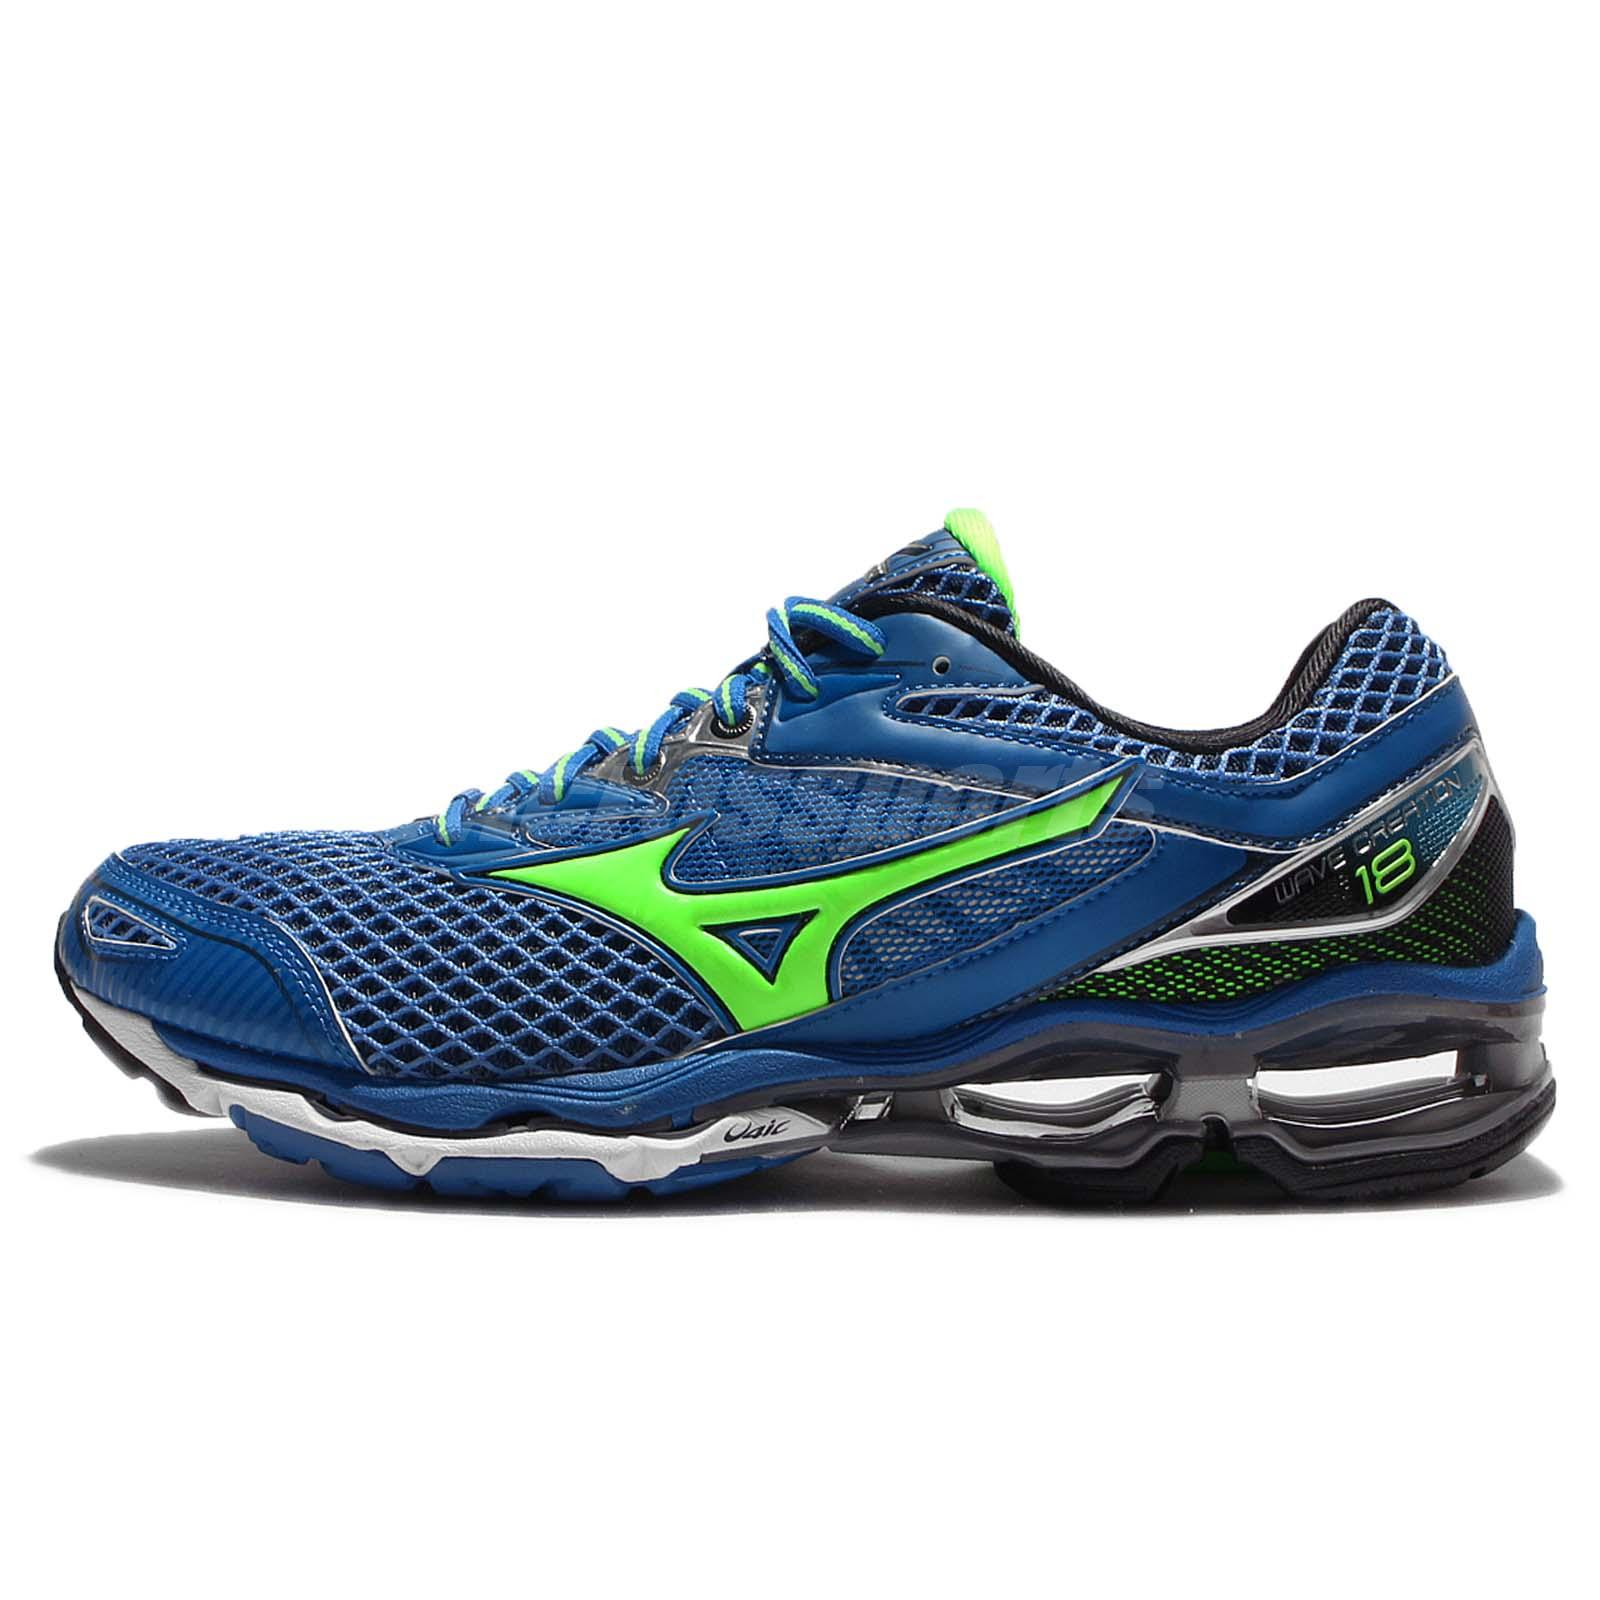 91d240fd55d0 mizuno wave creation 18 sale on sale > OFF46% Discounts